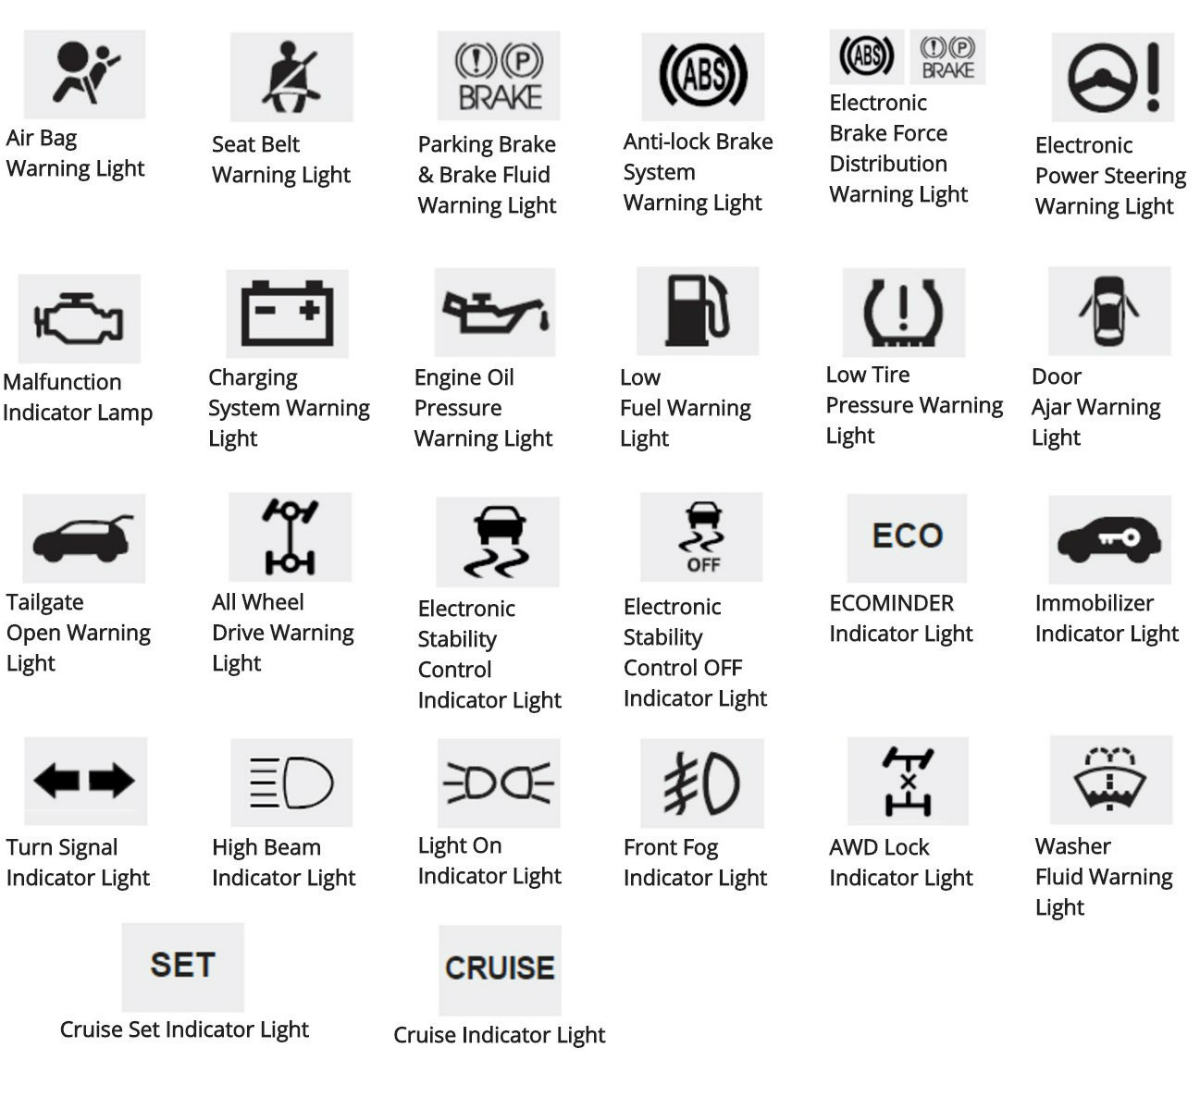 Kia Dashboard Warning Light Guide